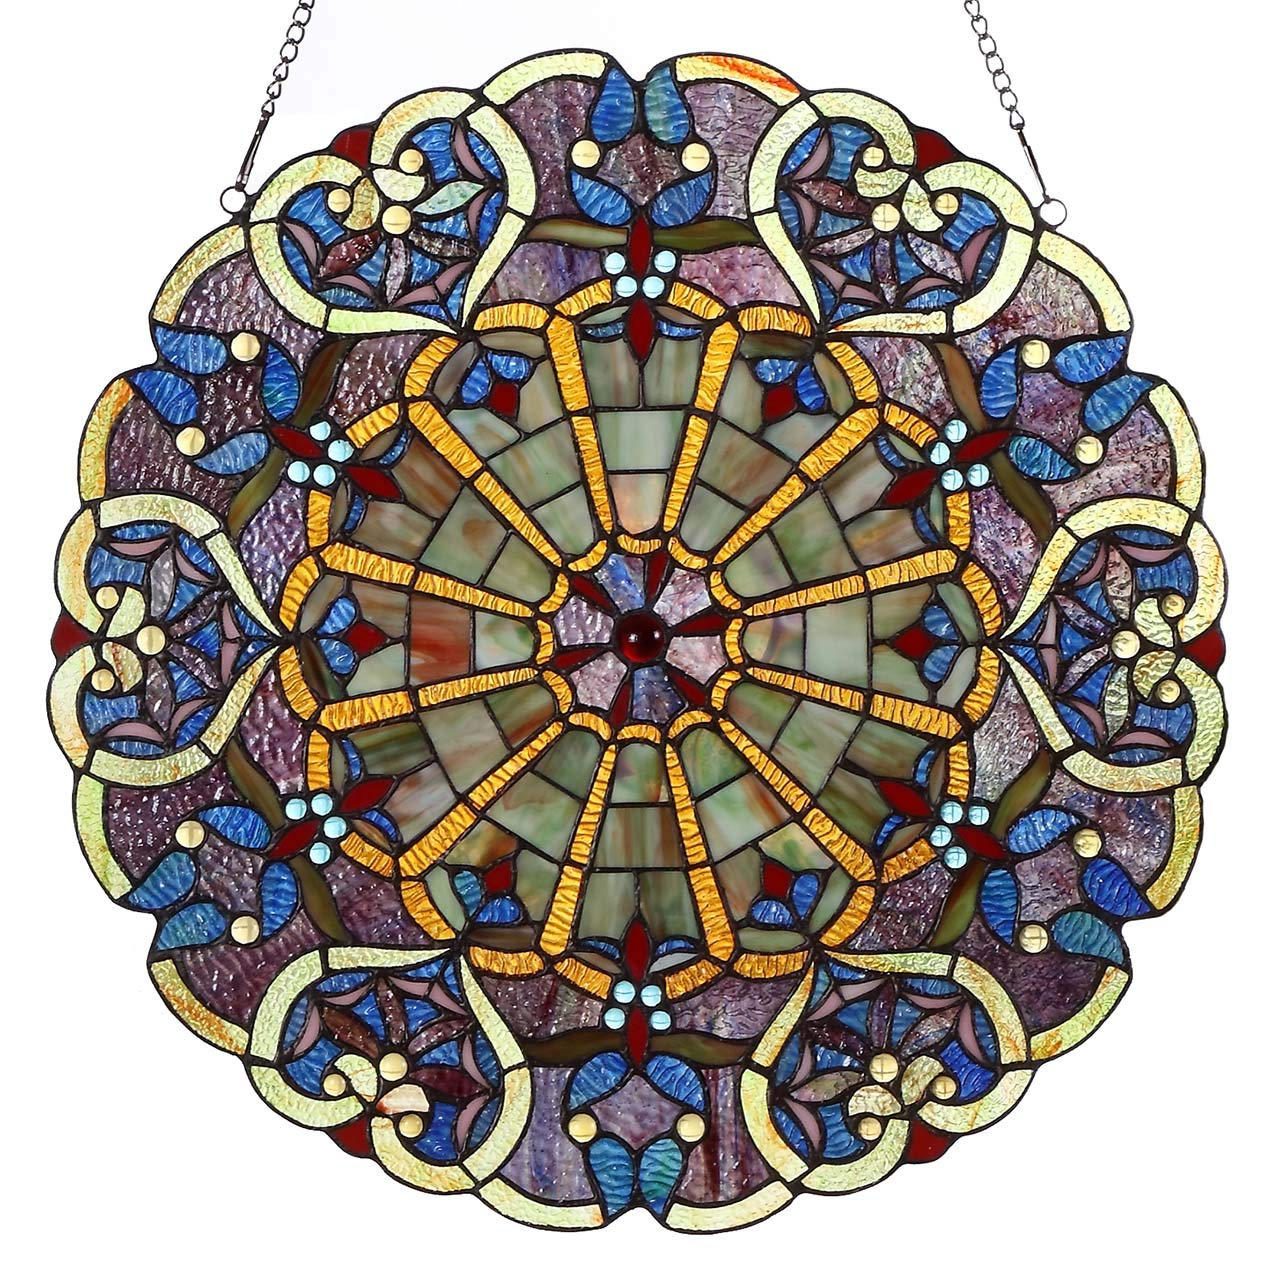 Bieye W10020 Victorian 22 inches High Webbed Heart Decorative Tiffany Style Stained Glass Window Panel with Hanging Chain by BIEYE